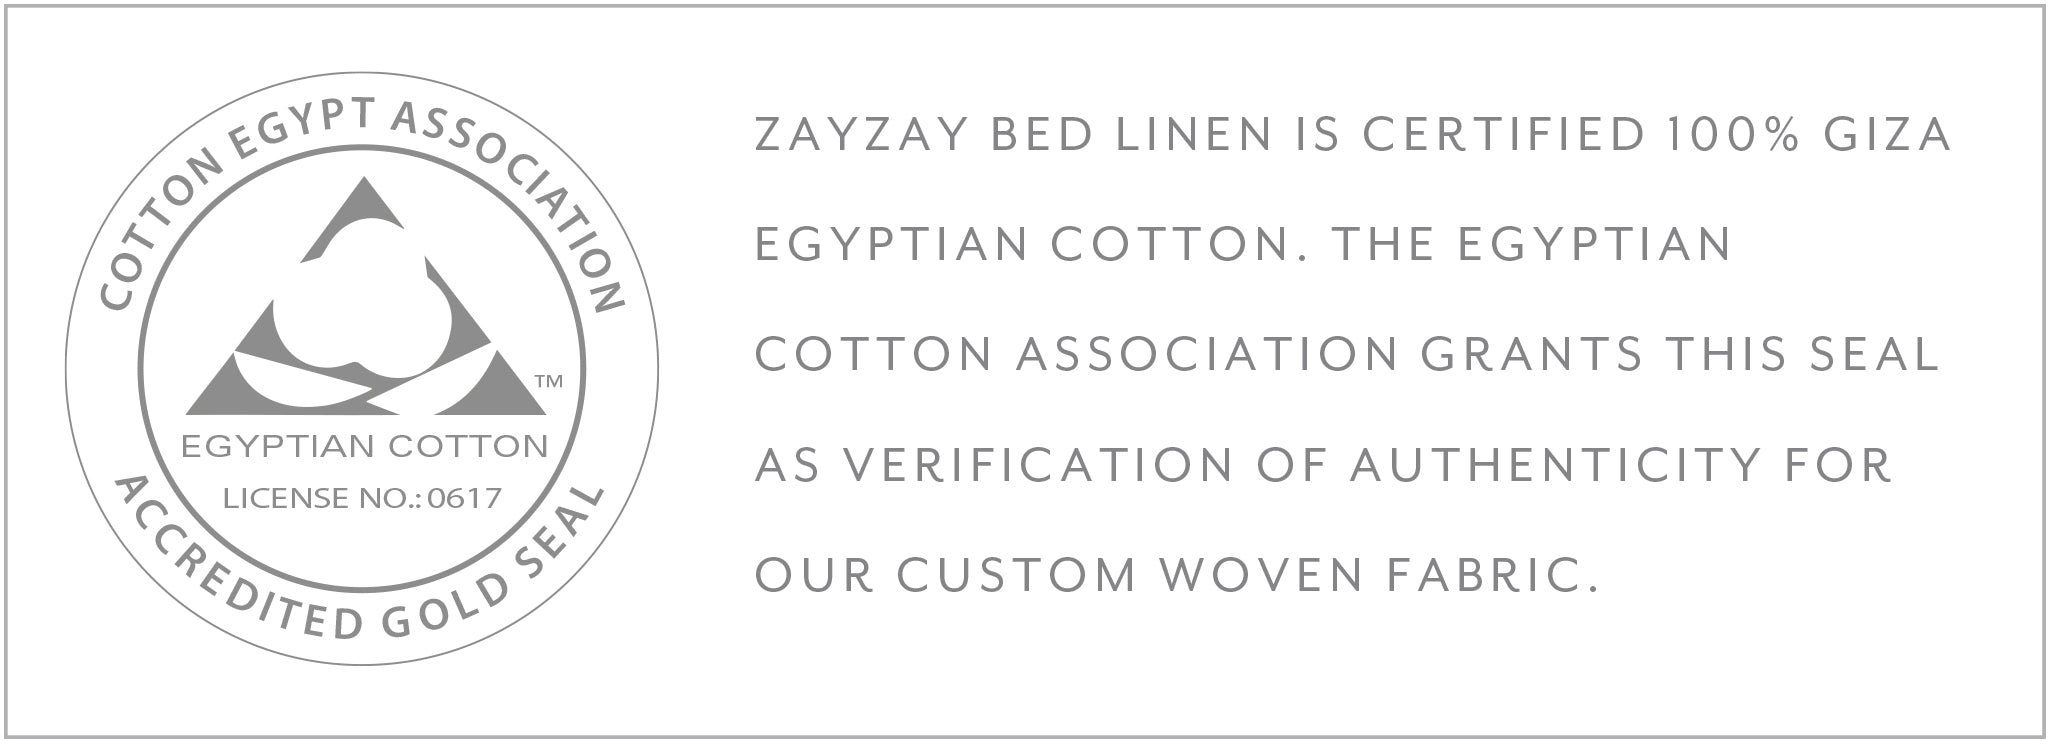 100% certified Giza Egyptian cotton seal